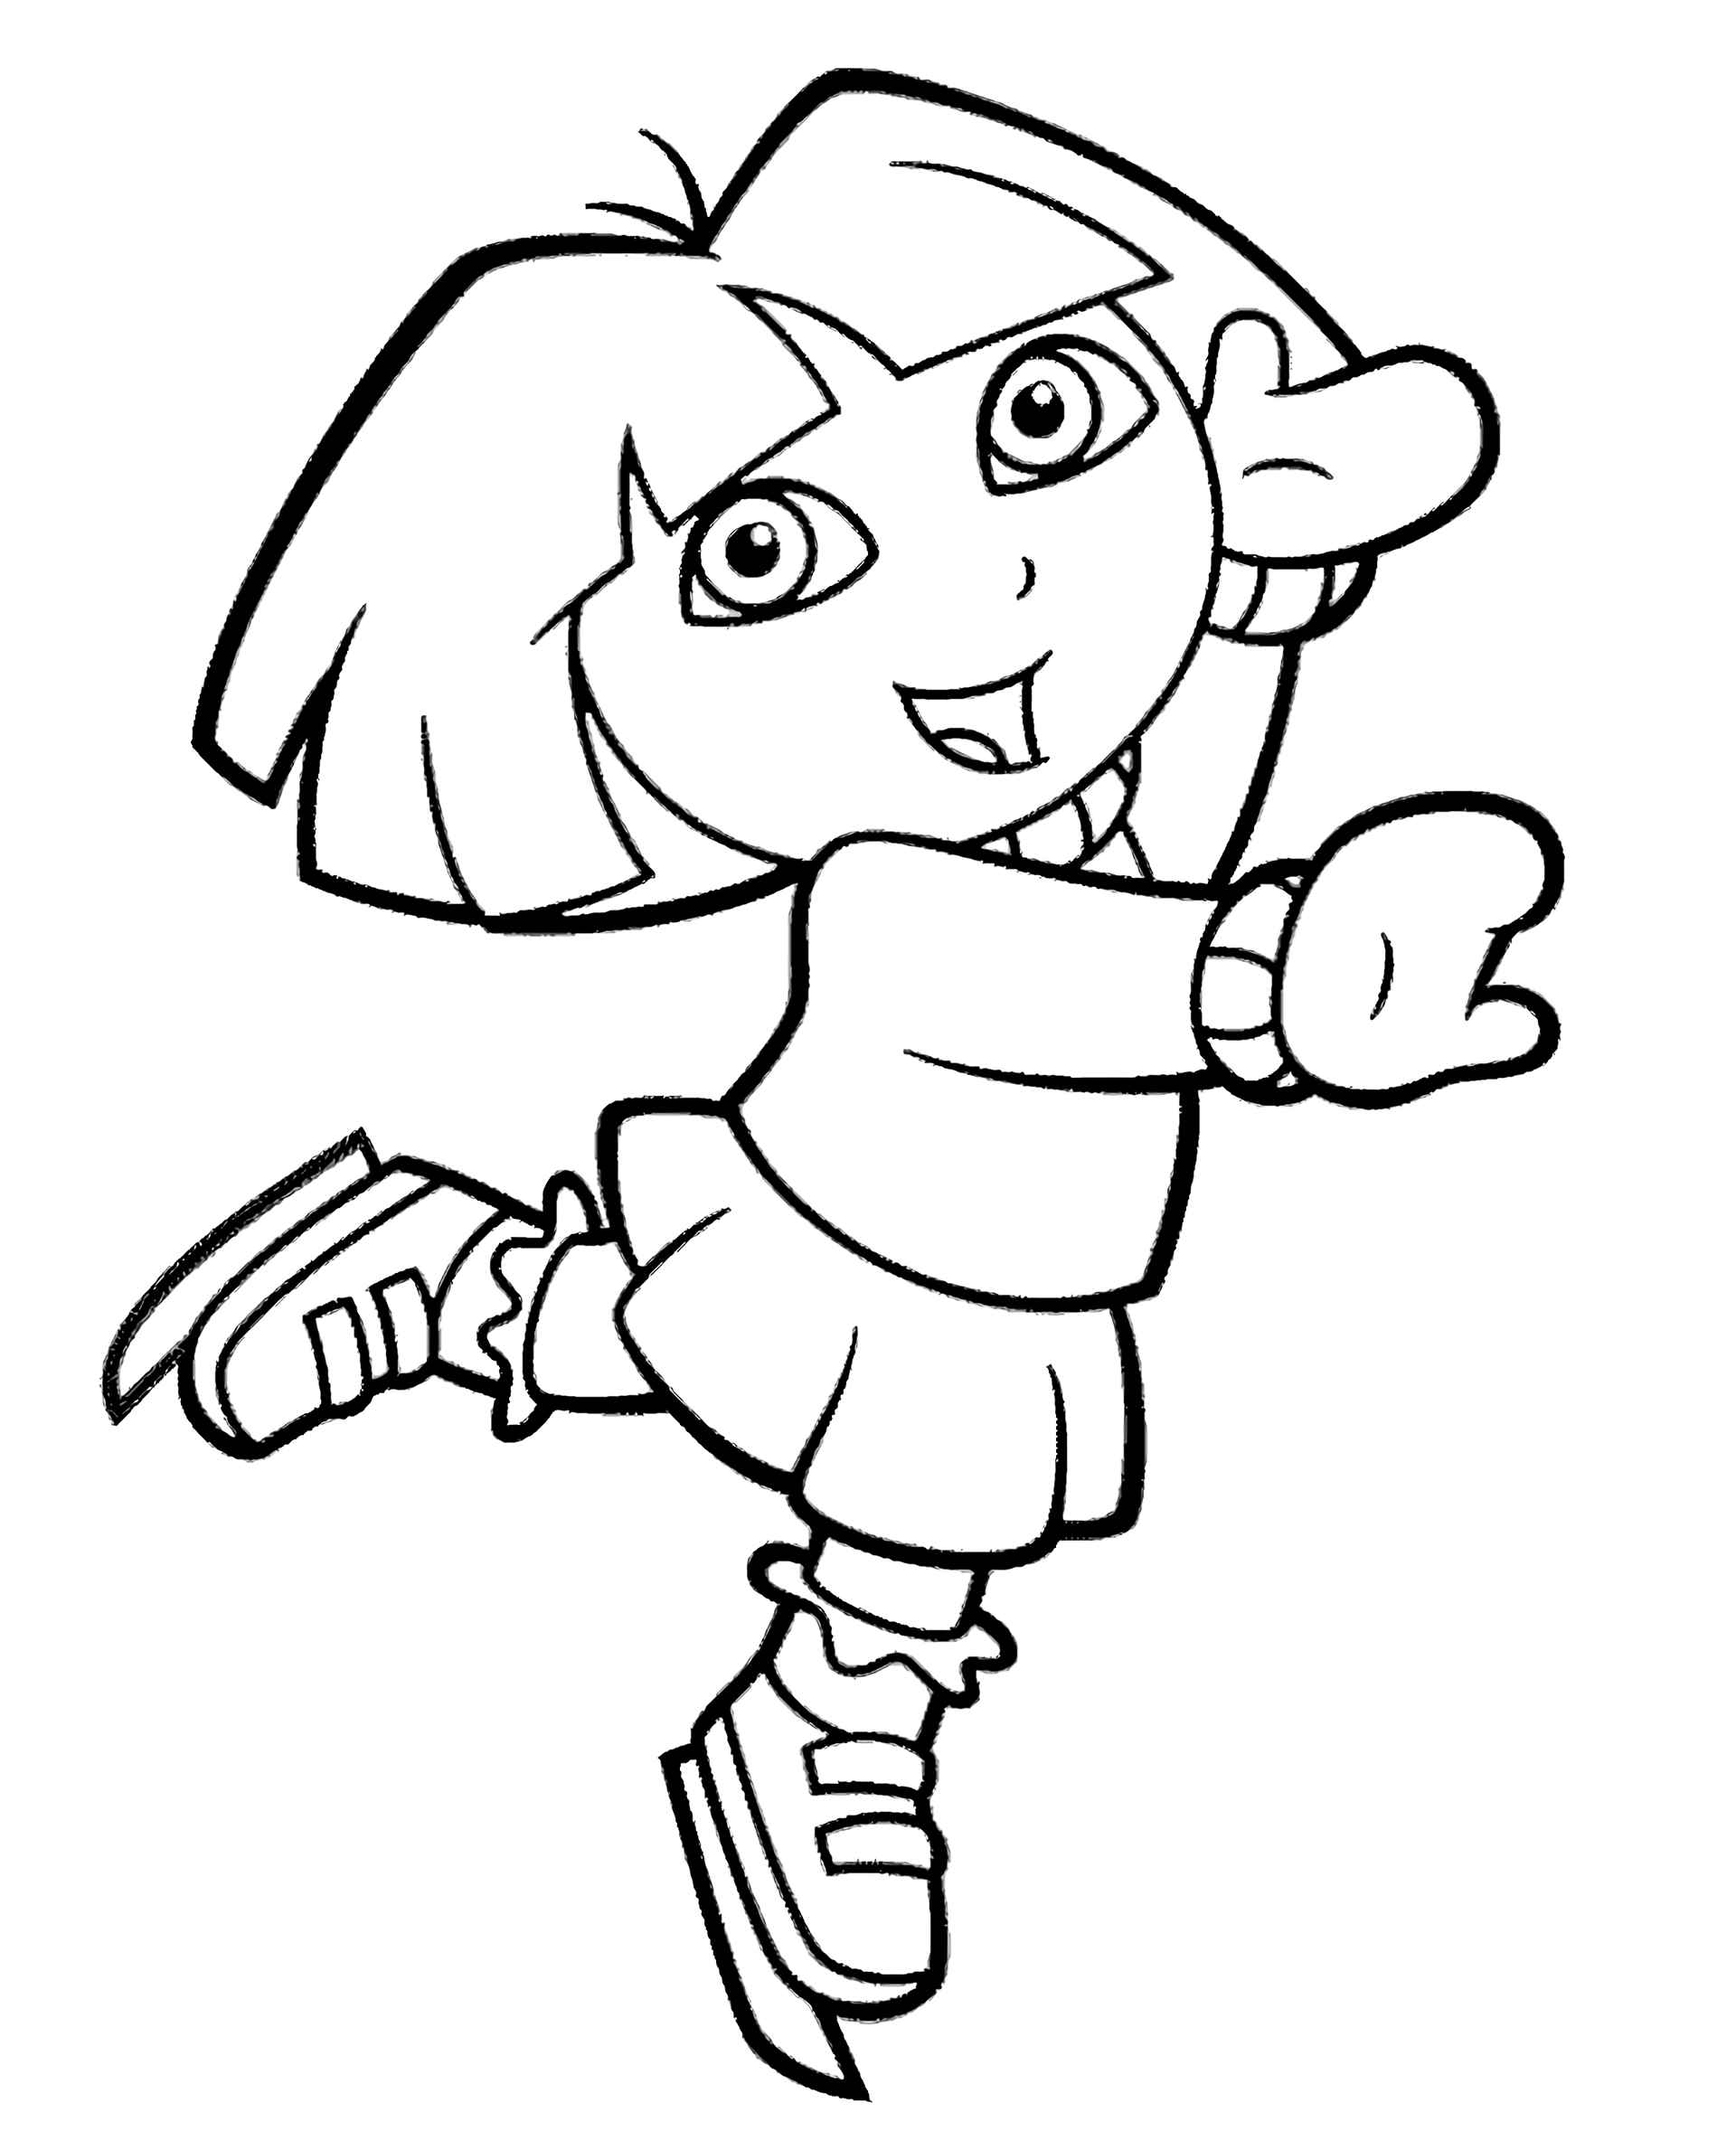 Dora Is Figure Skating Coloring Page